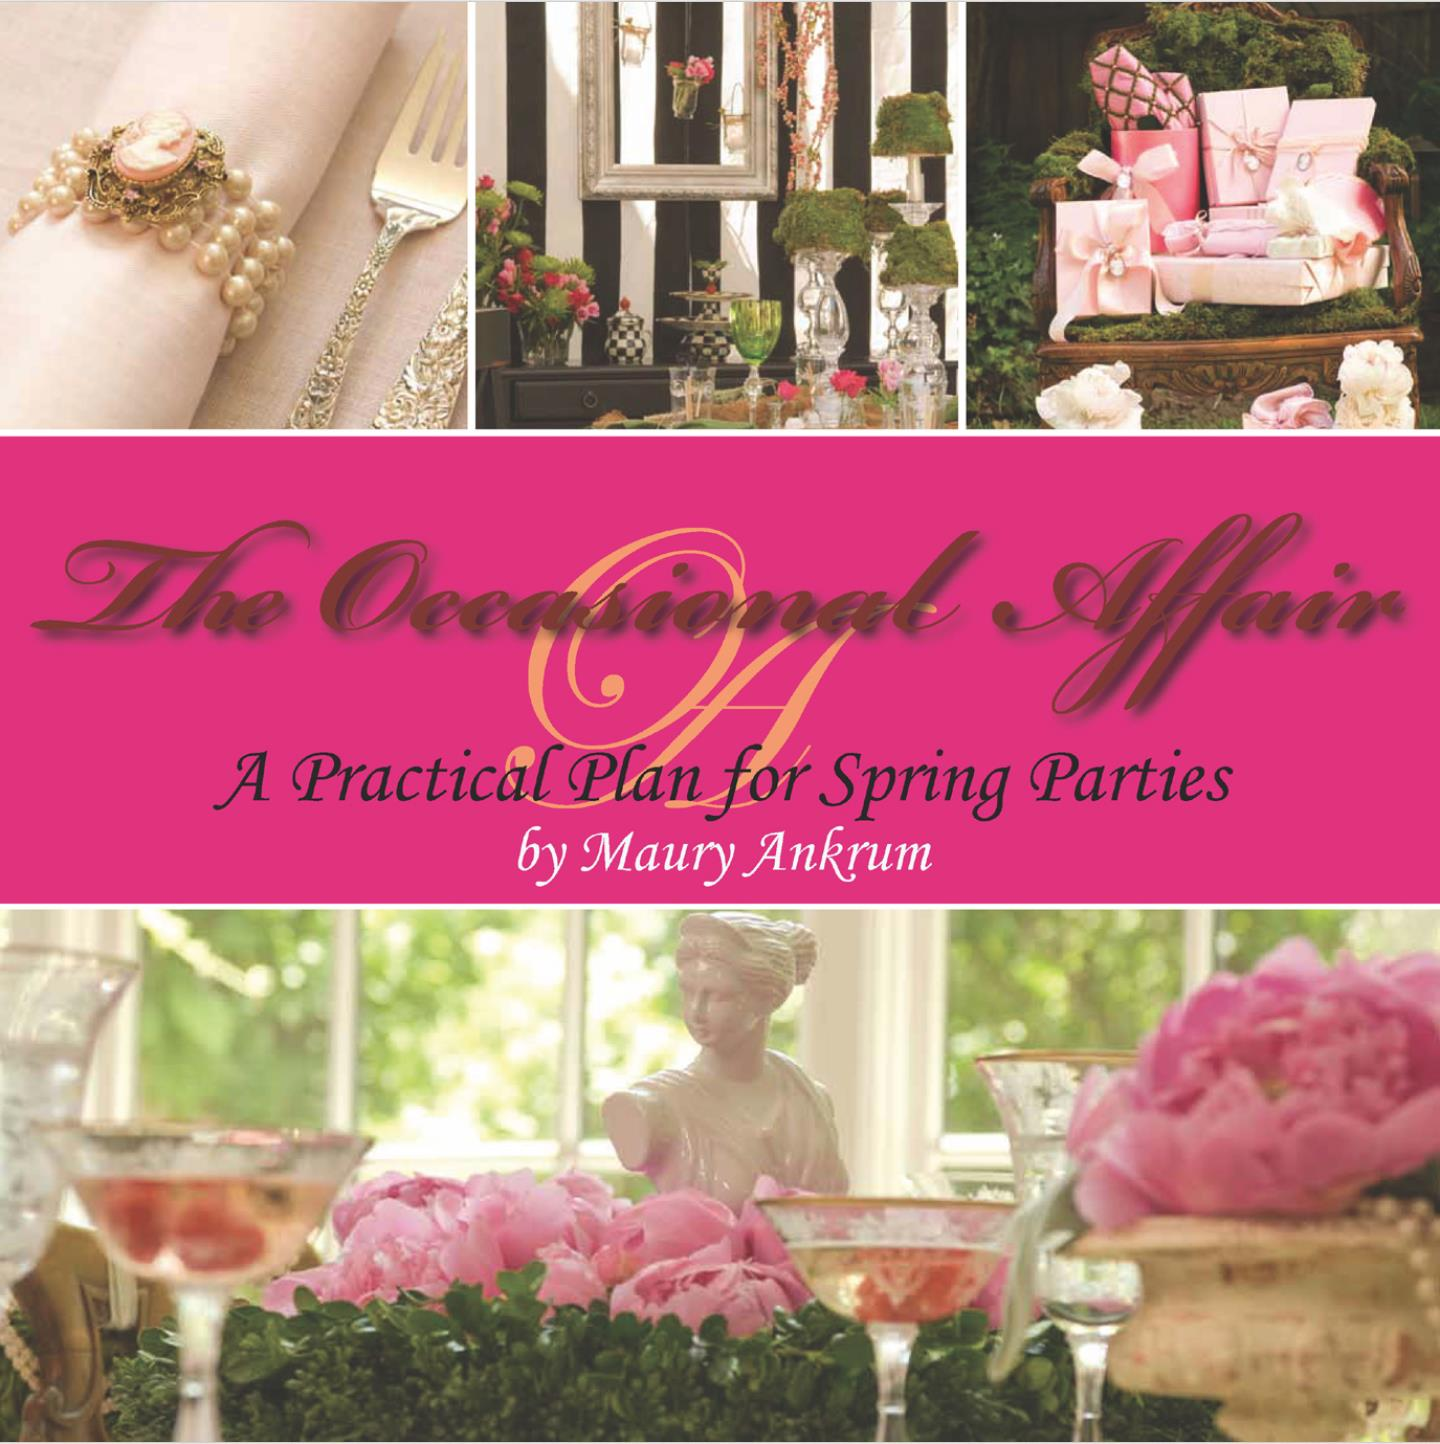 The Occasional Affair: A Practical Plan for Spring Parties